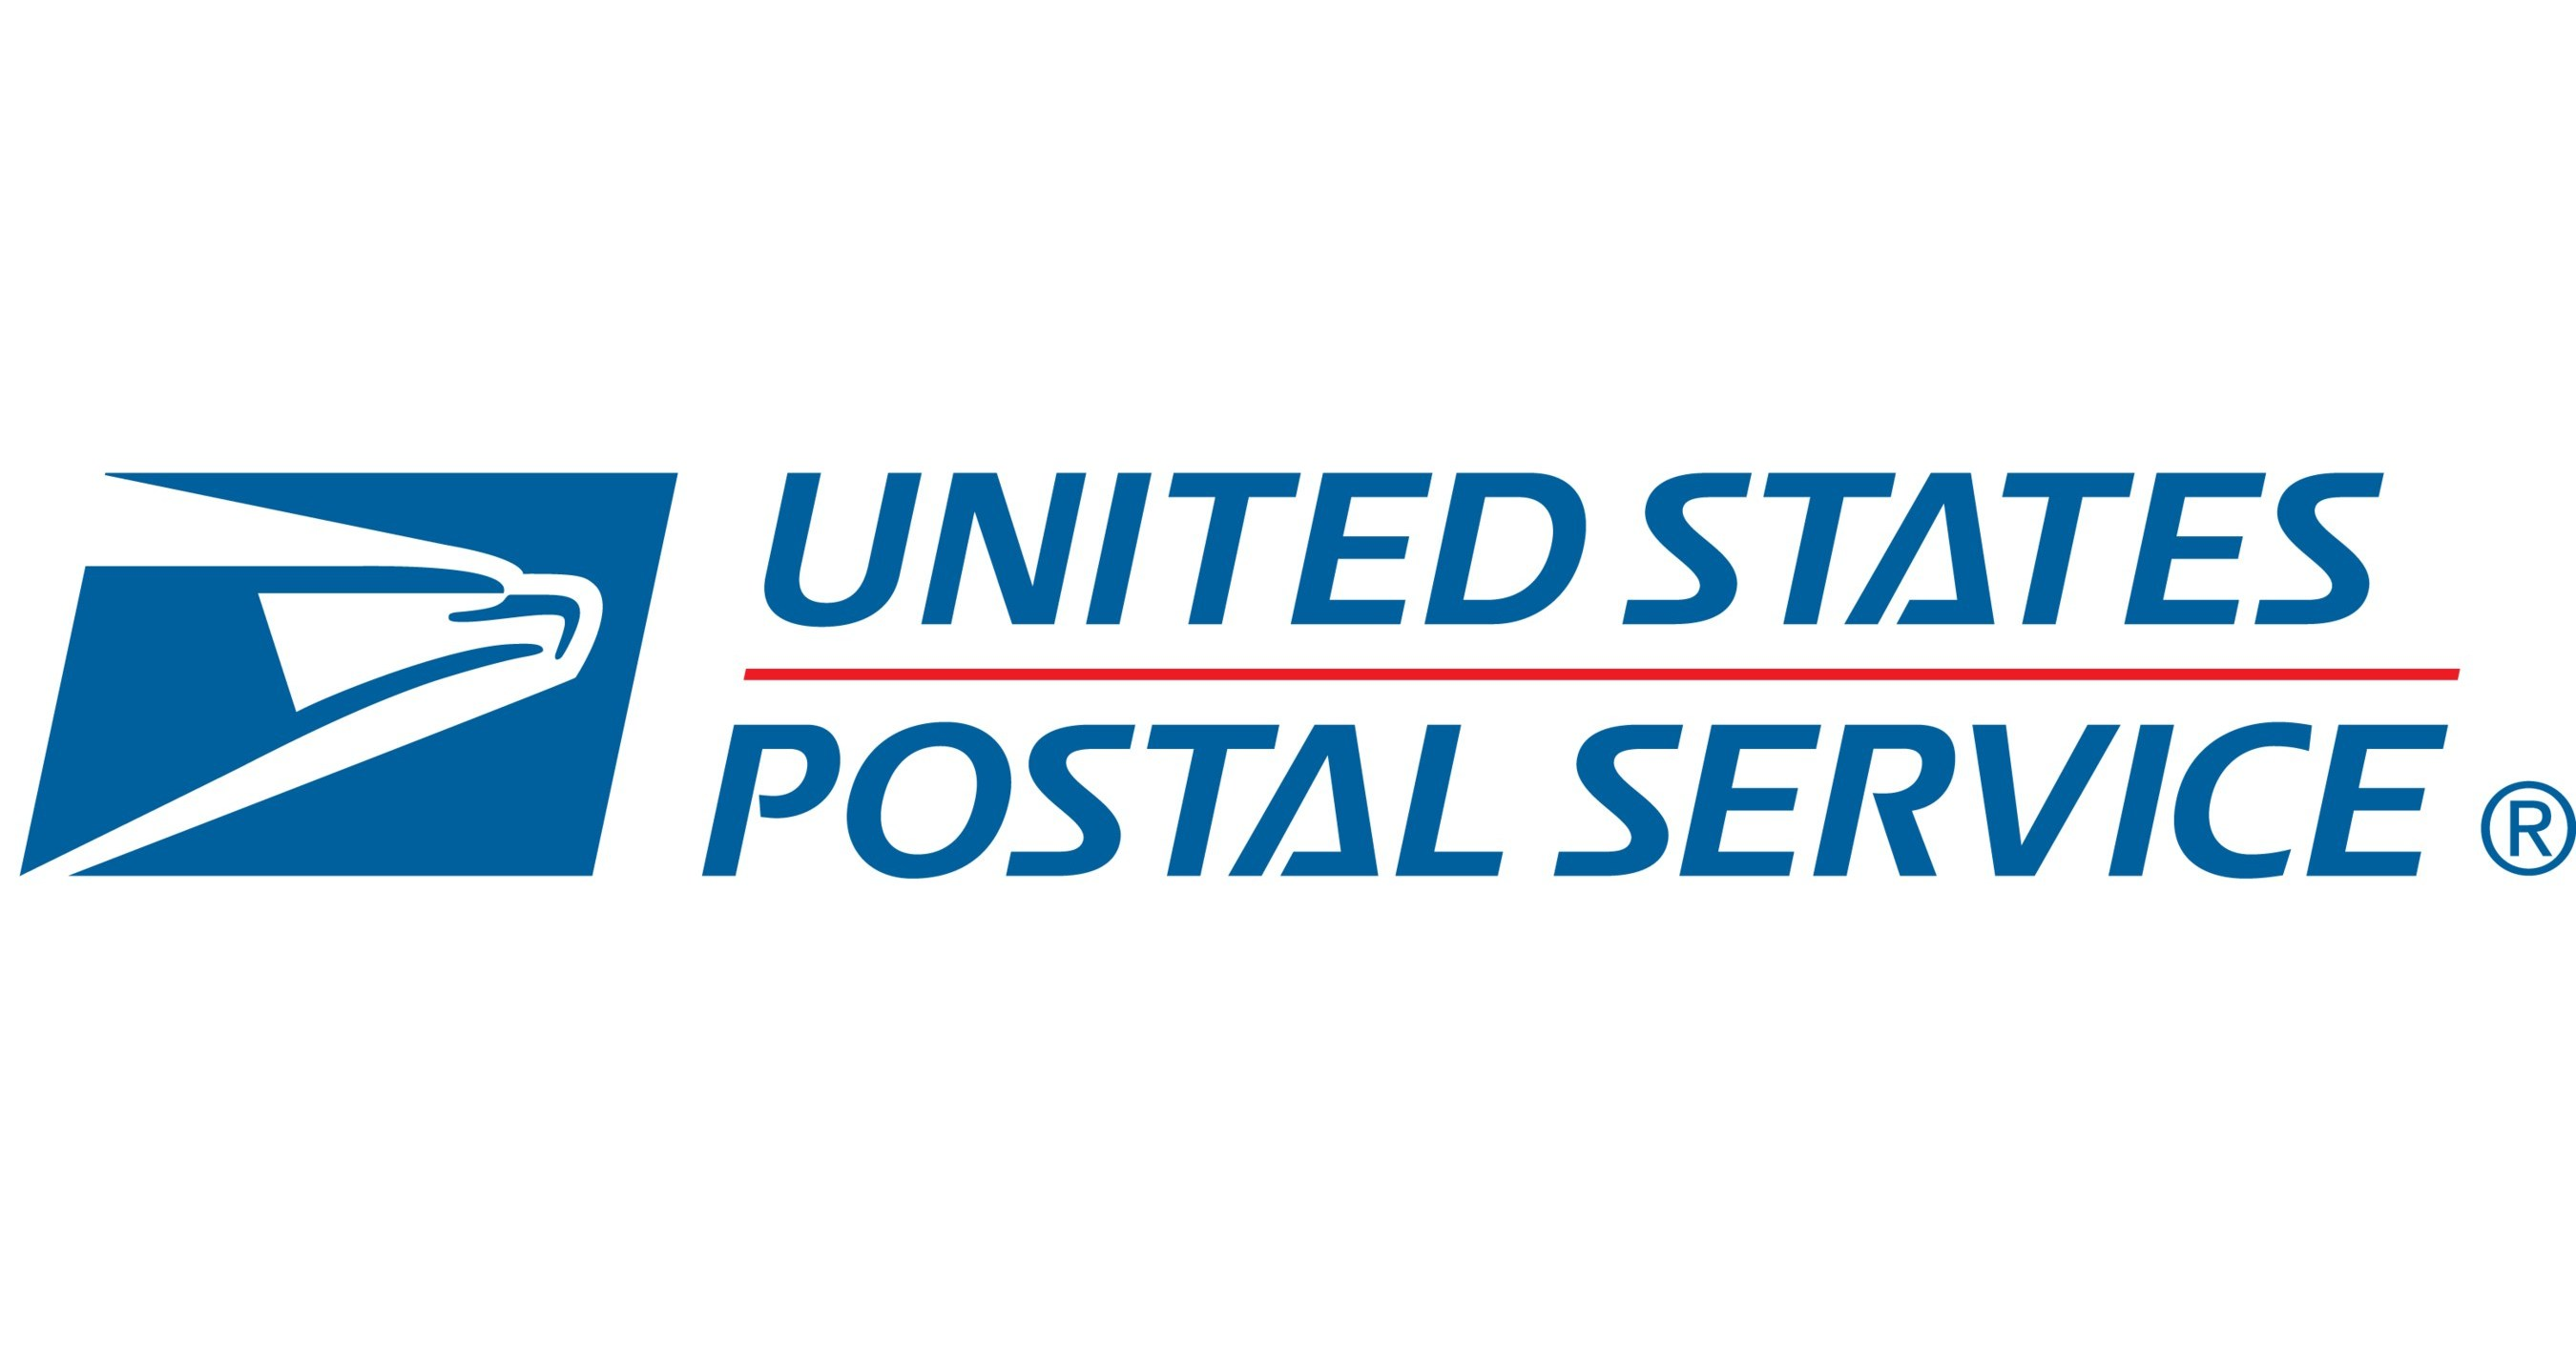 U.S. Postal Service Announces New Prices for 2021